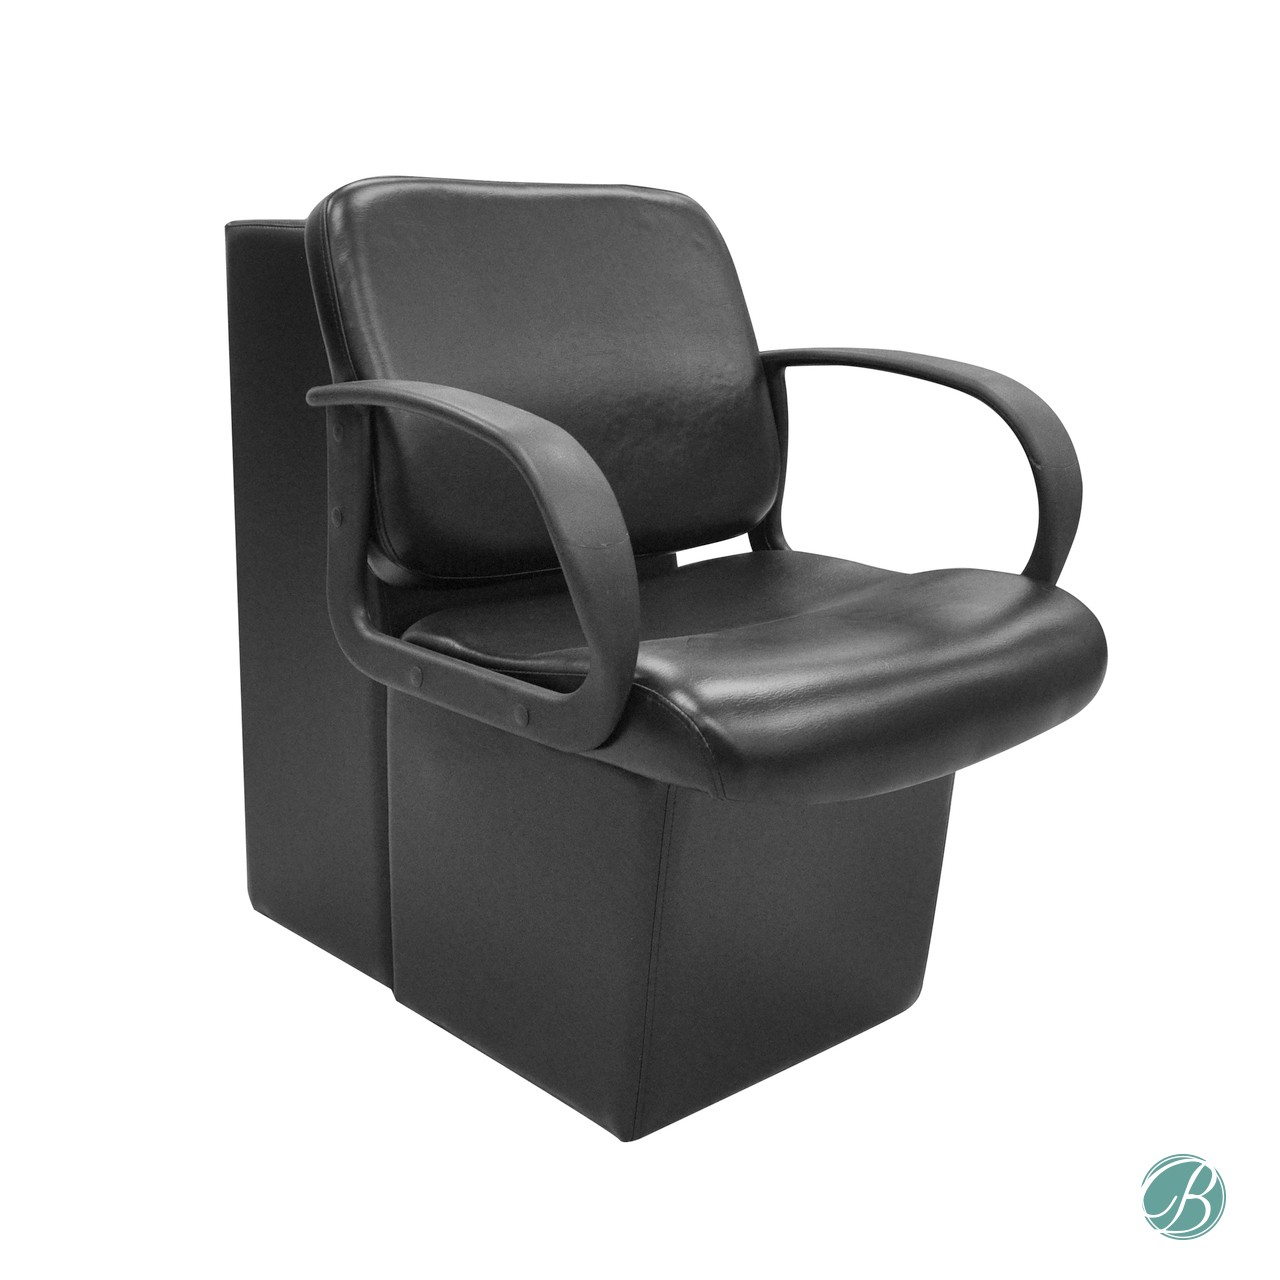 Salon Dryer Chair Milton Dryer Chair Dryer Items Salon And Spa Equipment